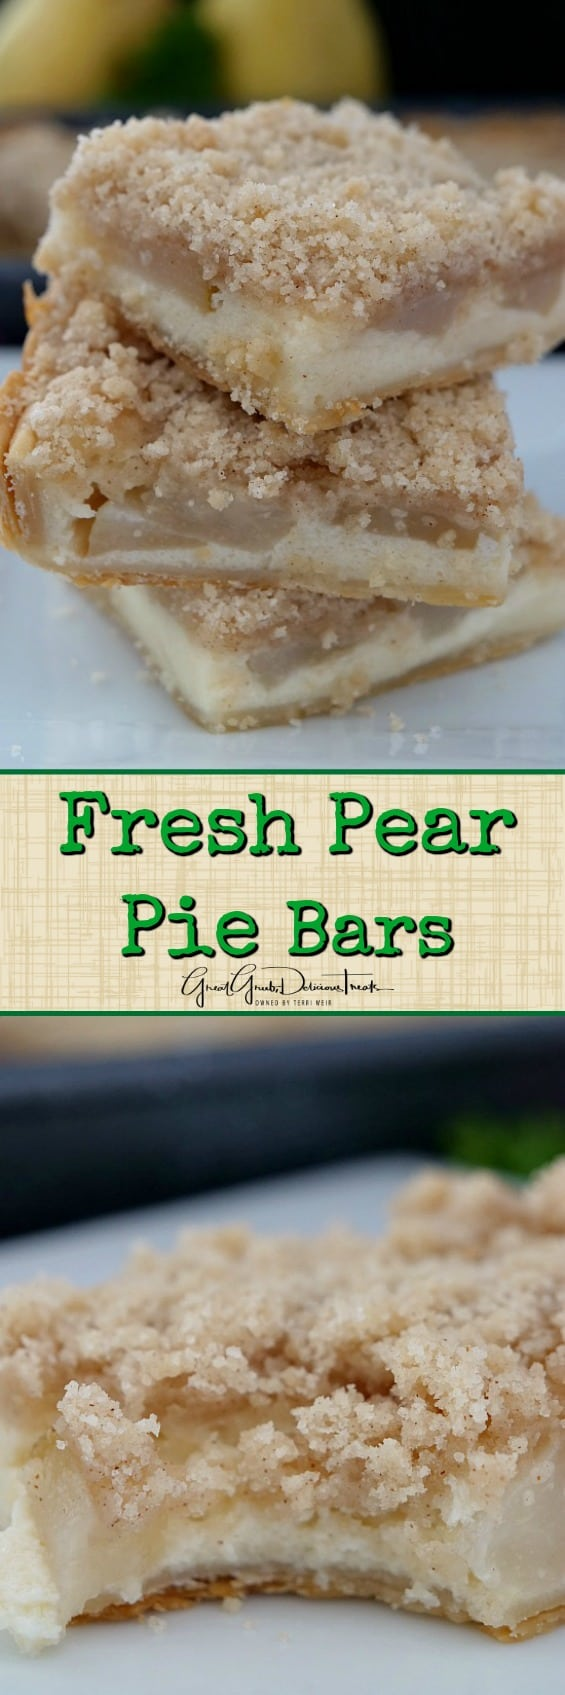 Fresh Pear Pie Bars